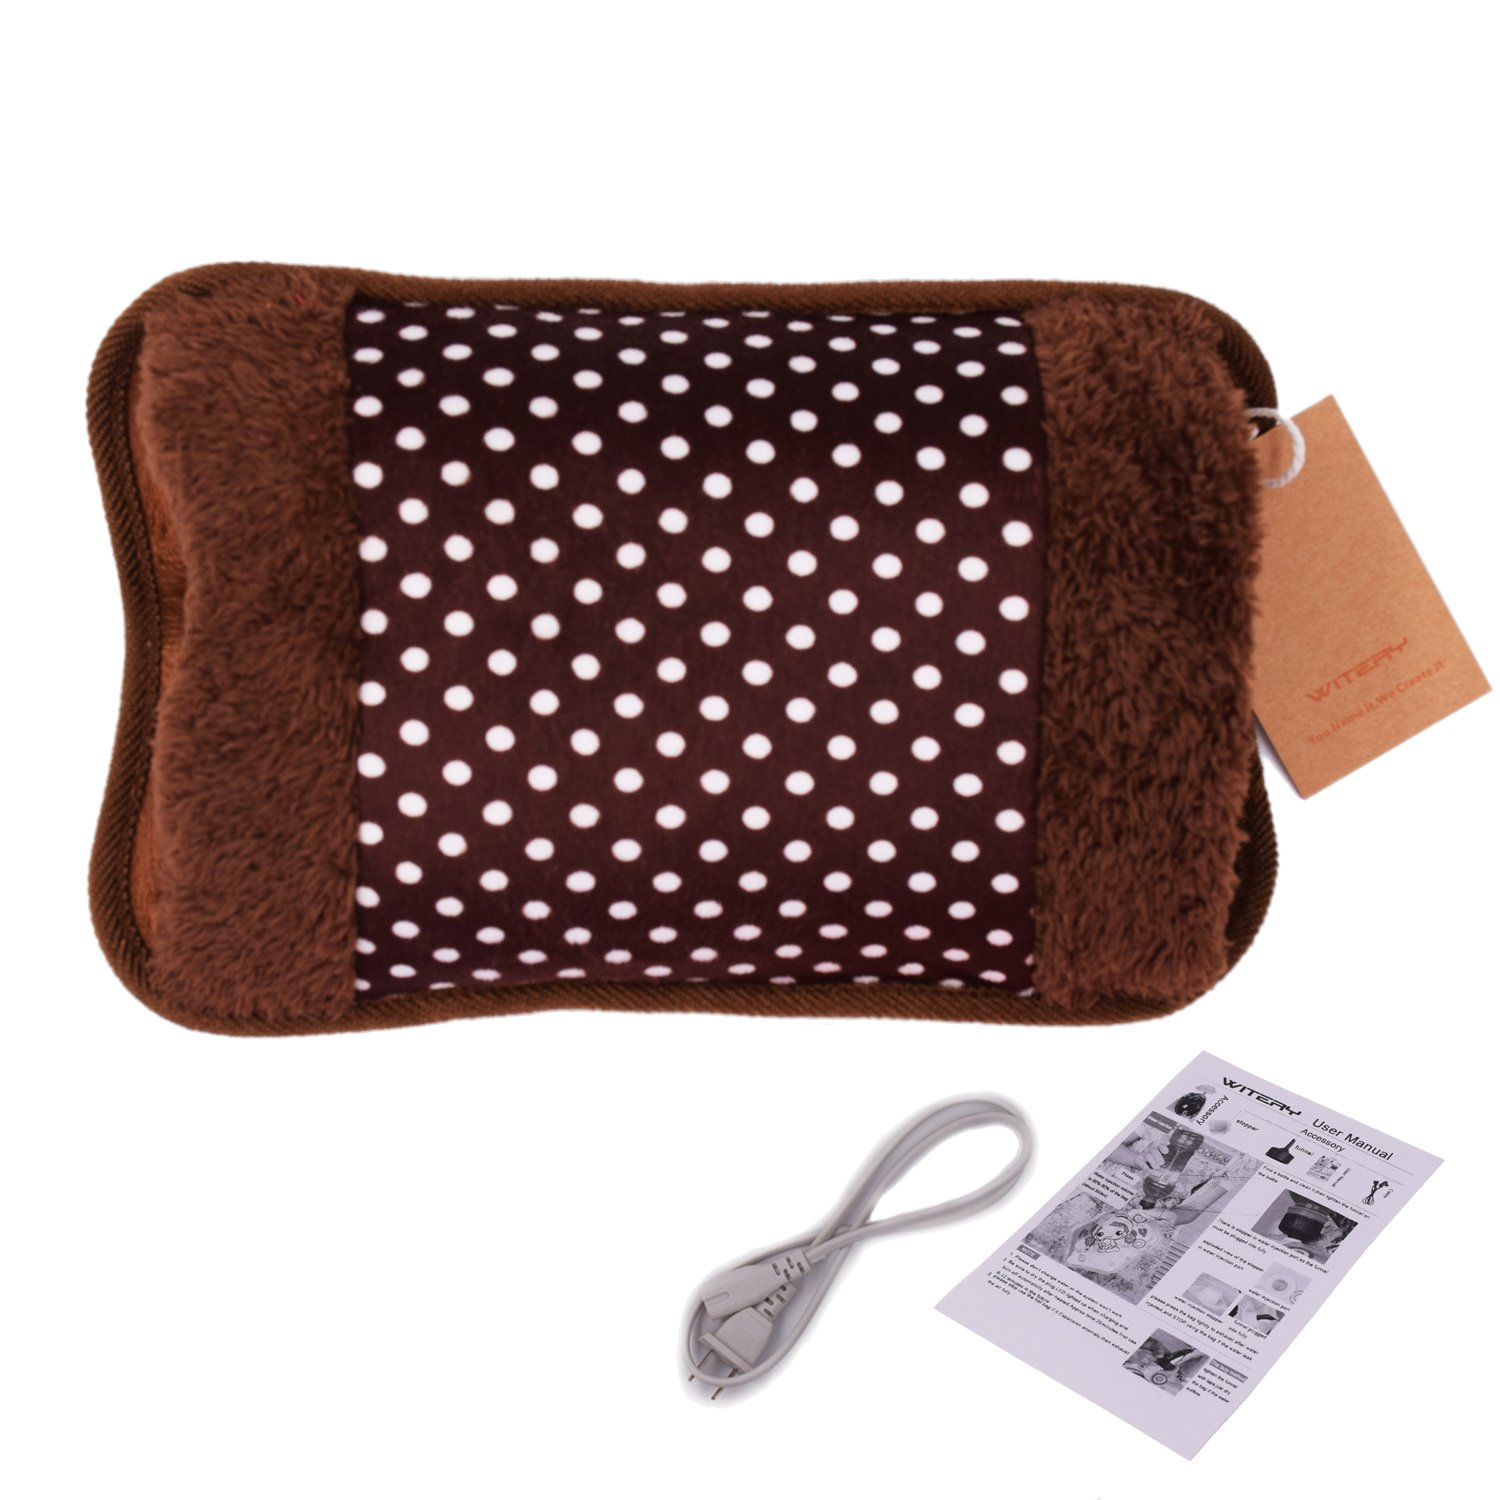 WITERY Hand Warmer - Portable Rechargeable Electric Heat/Hot Water Bag with Soft Velvet Cover - Ideal For Warm Your Hands/Pain Relief/Muscle Relaxation & Comfort Use and As Pillow Coffee